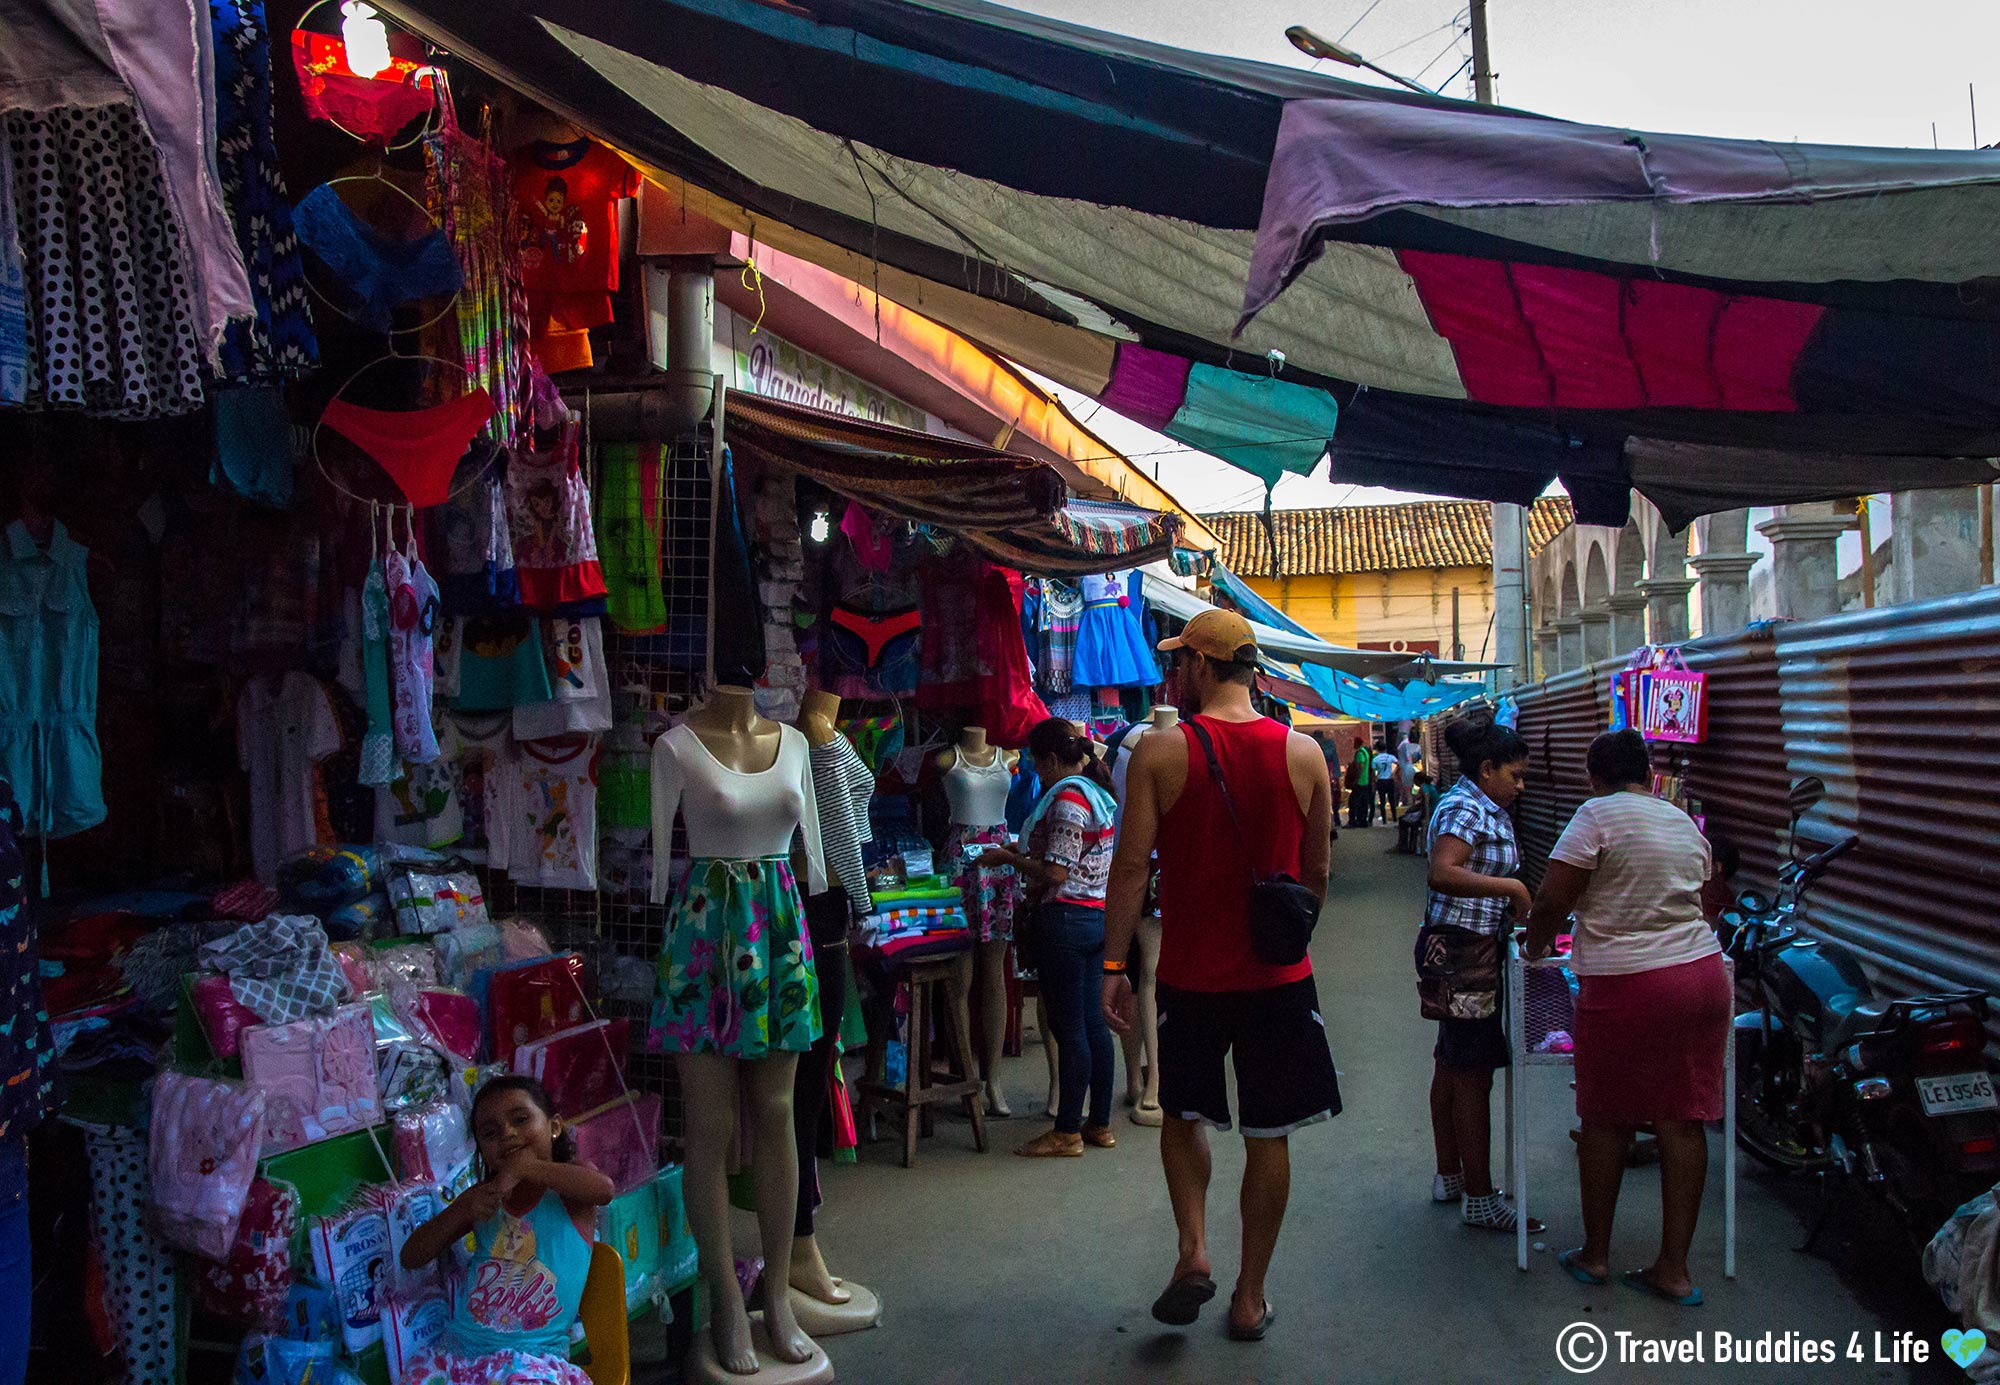 Joey Walking Amid The Colourful Shops In The Caribbean